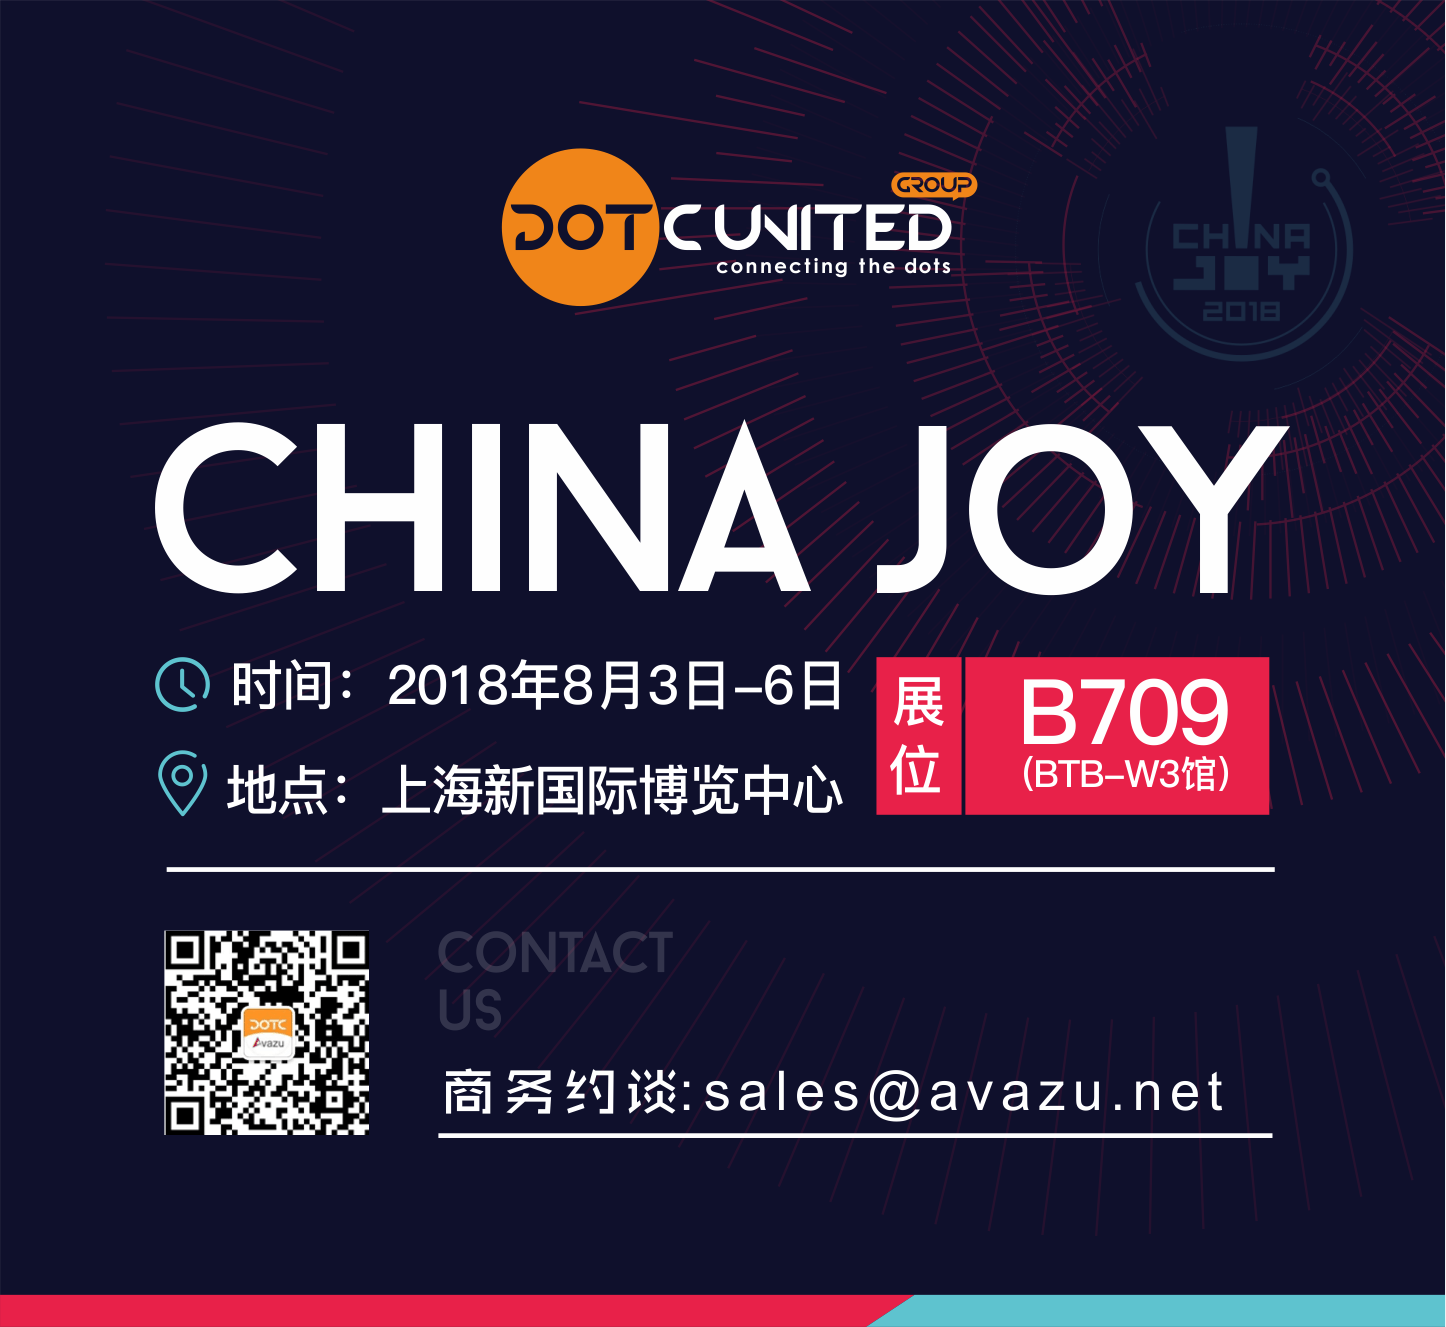 DotC United Group确认参展2018ChinaJoyBTOB